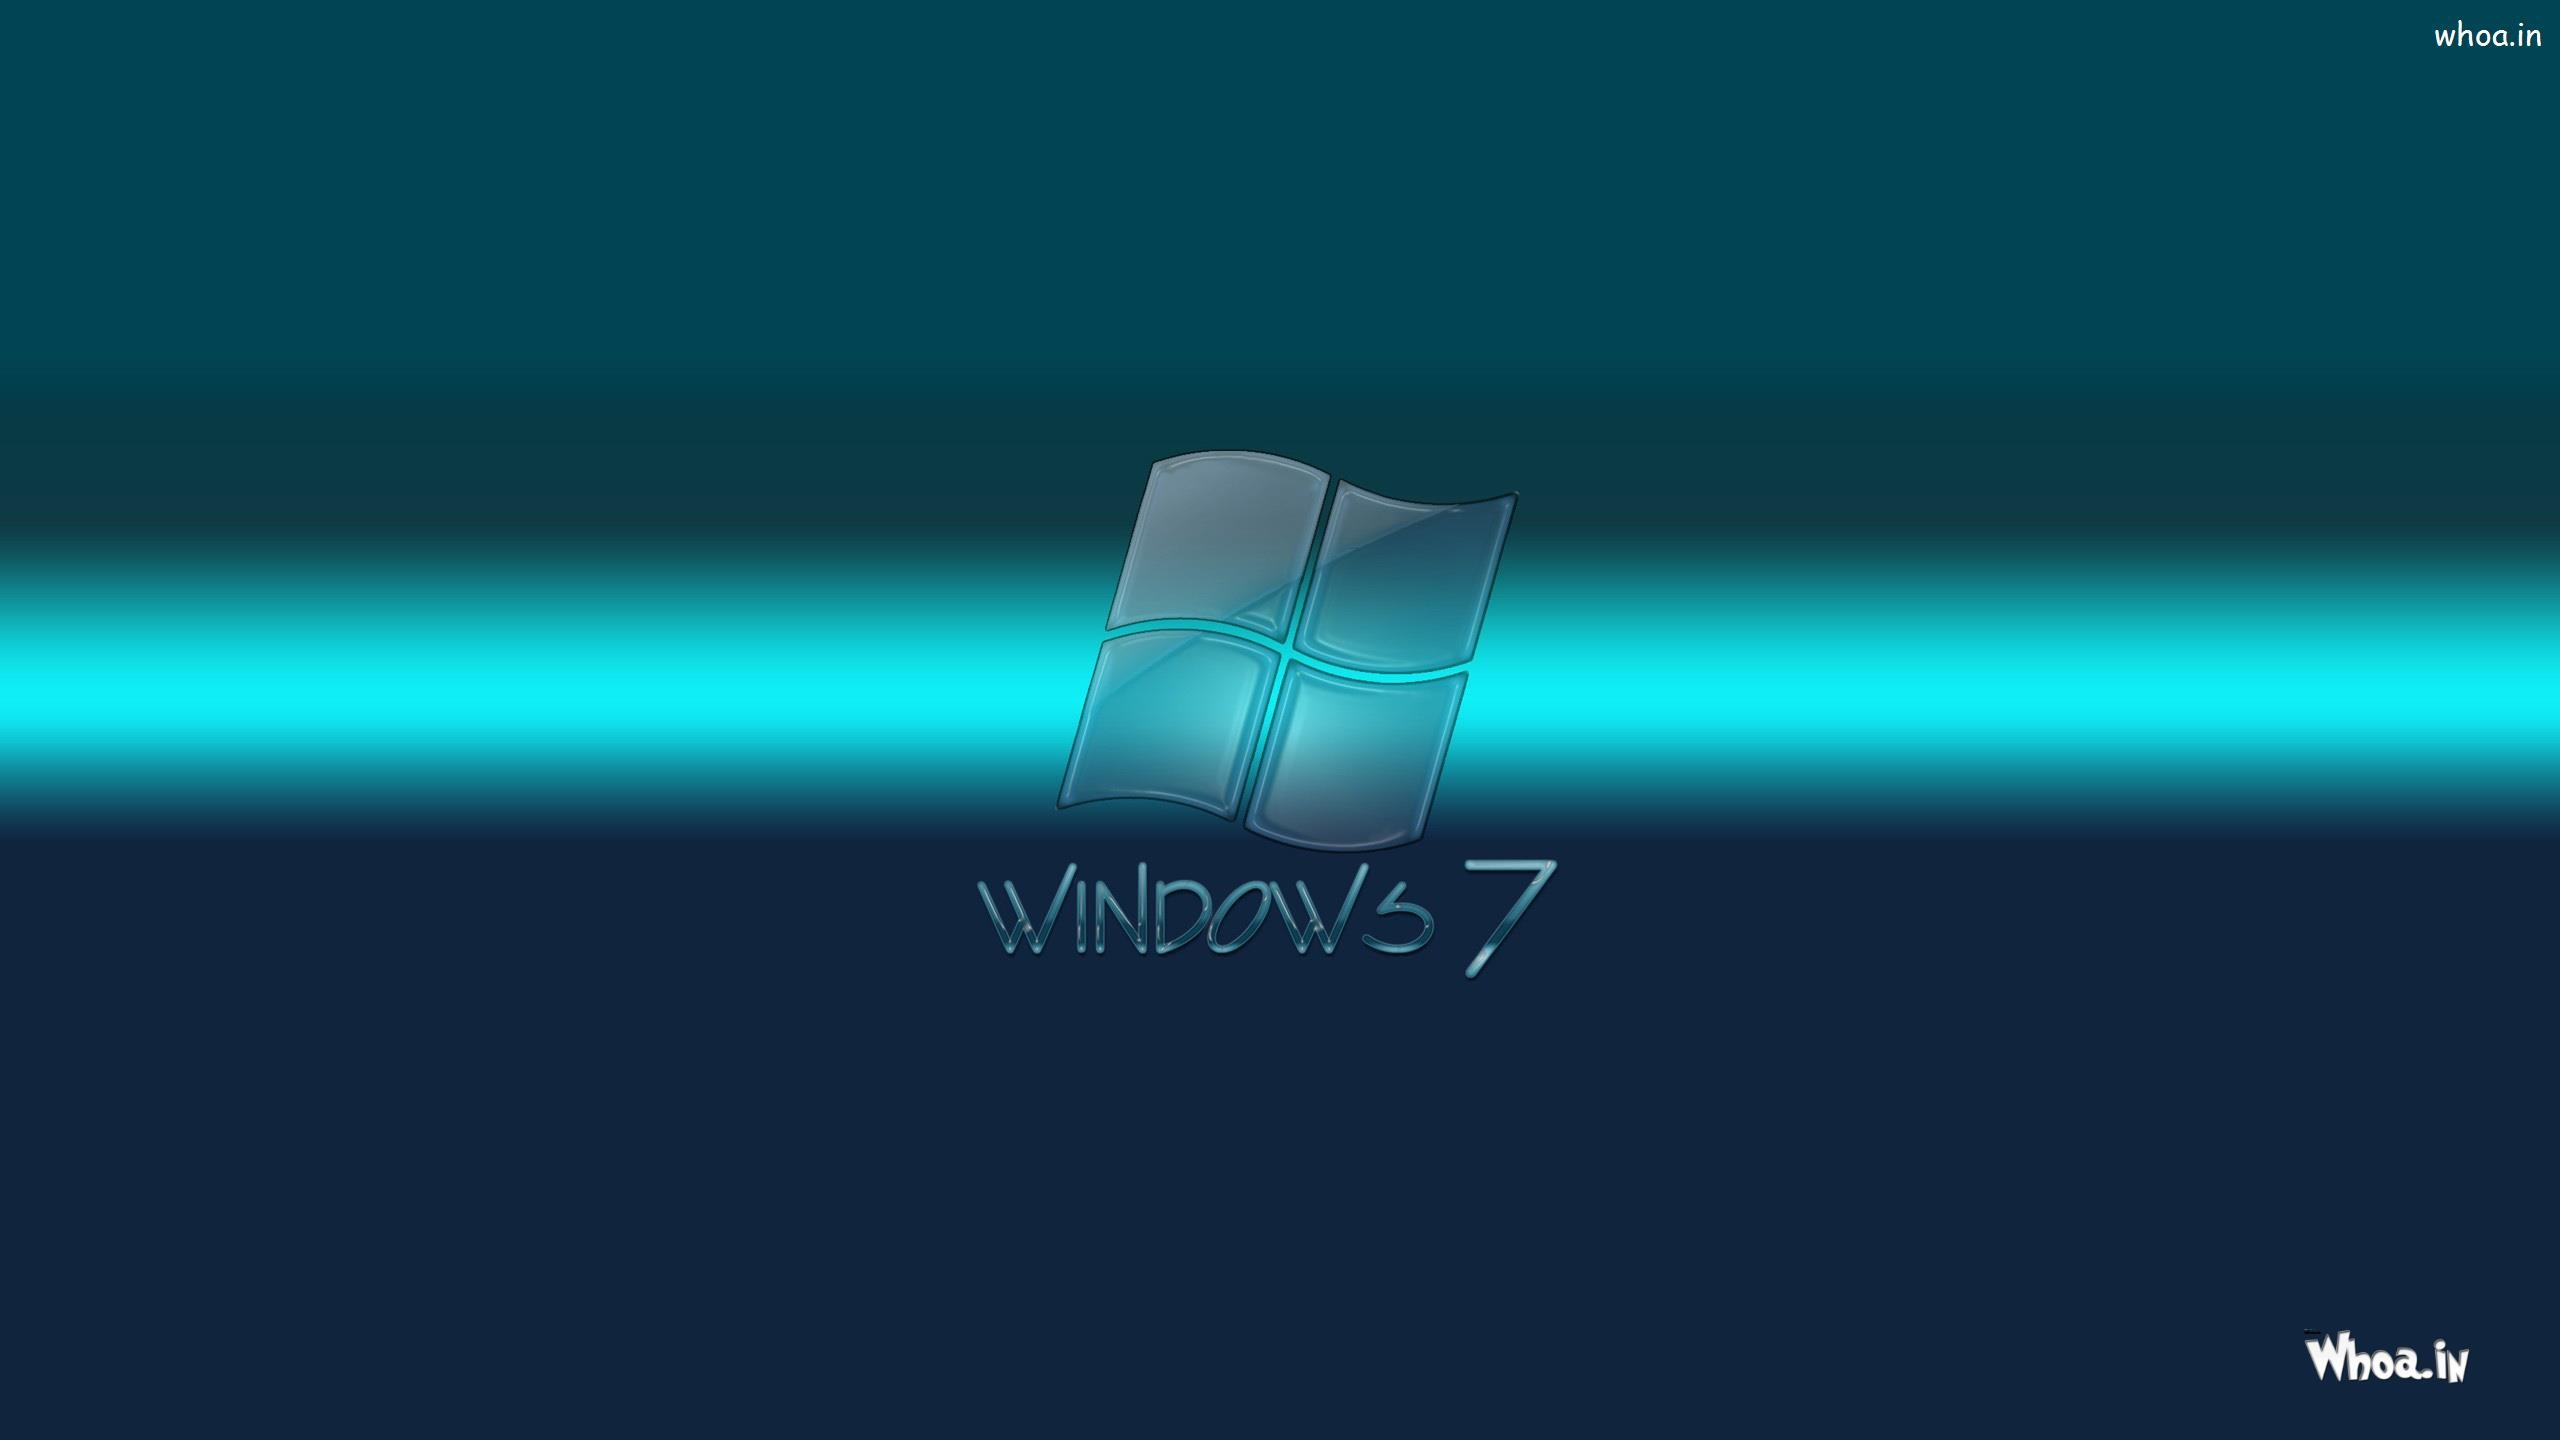 Windows 7 Background Pictures 71 images 2560x1440